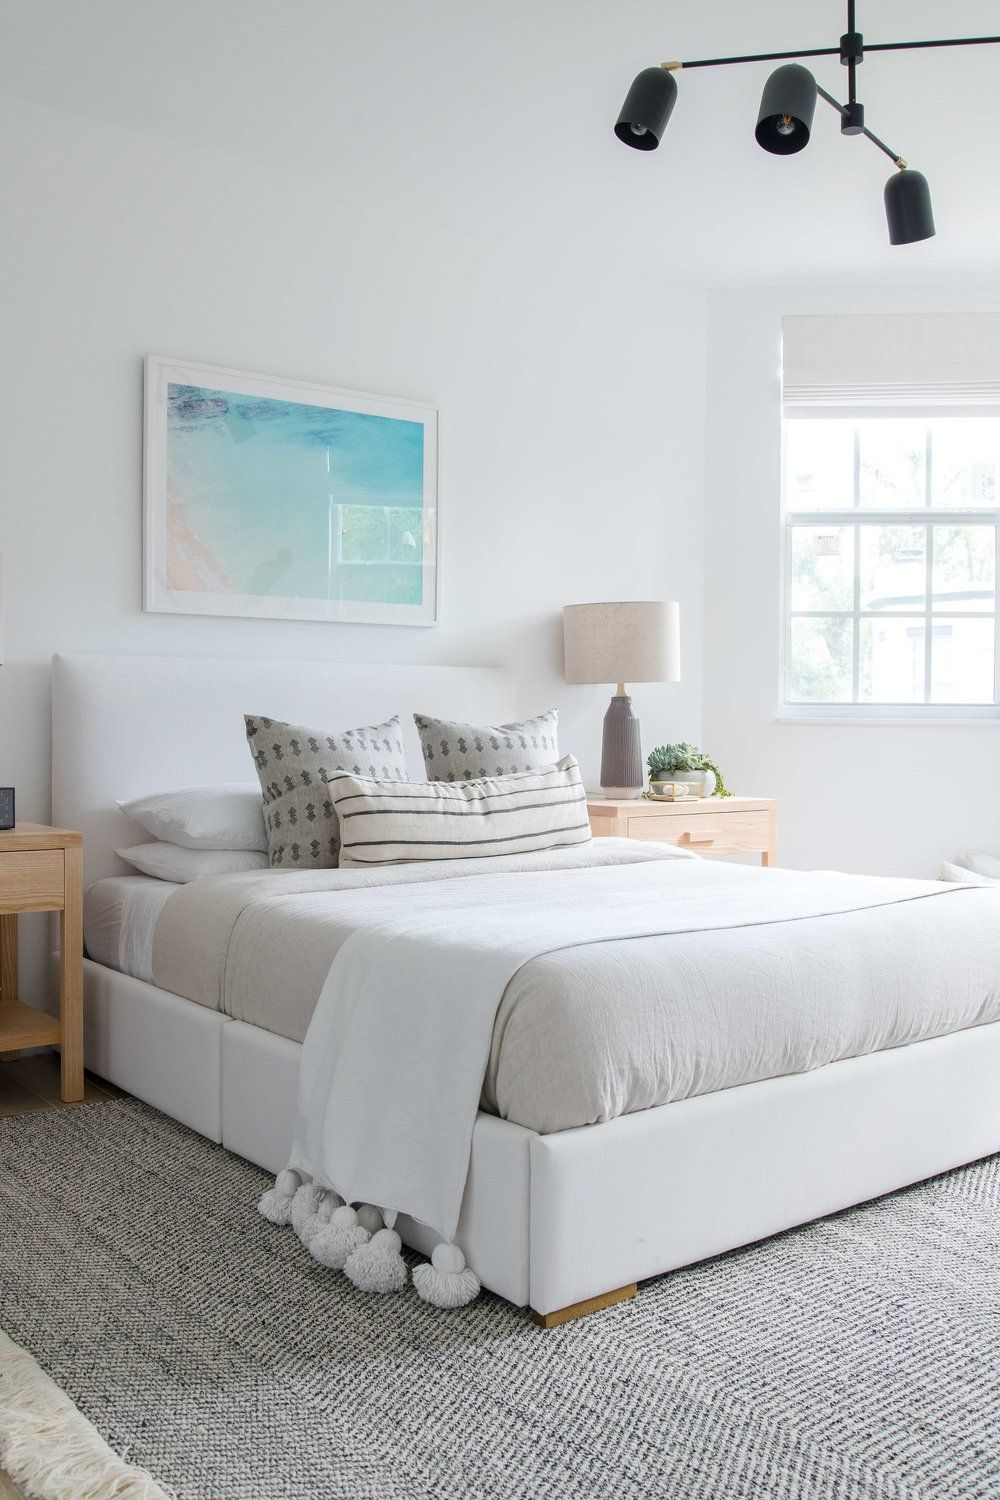 White Upholstered Bed The Habitat Collective Interior Design